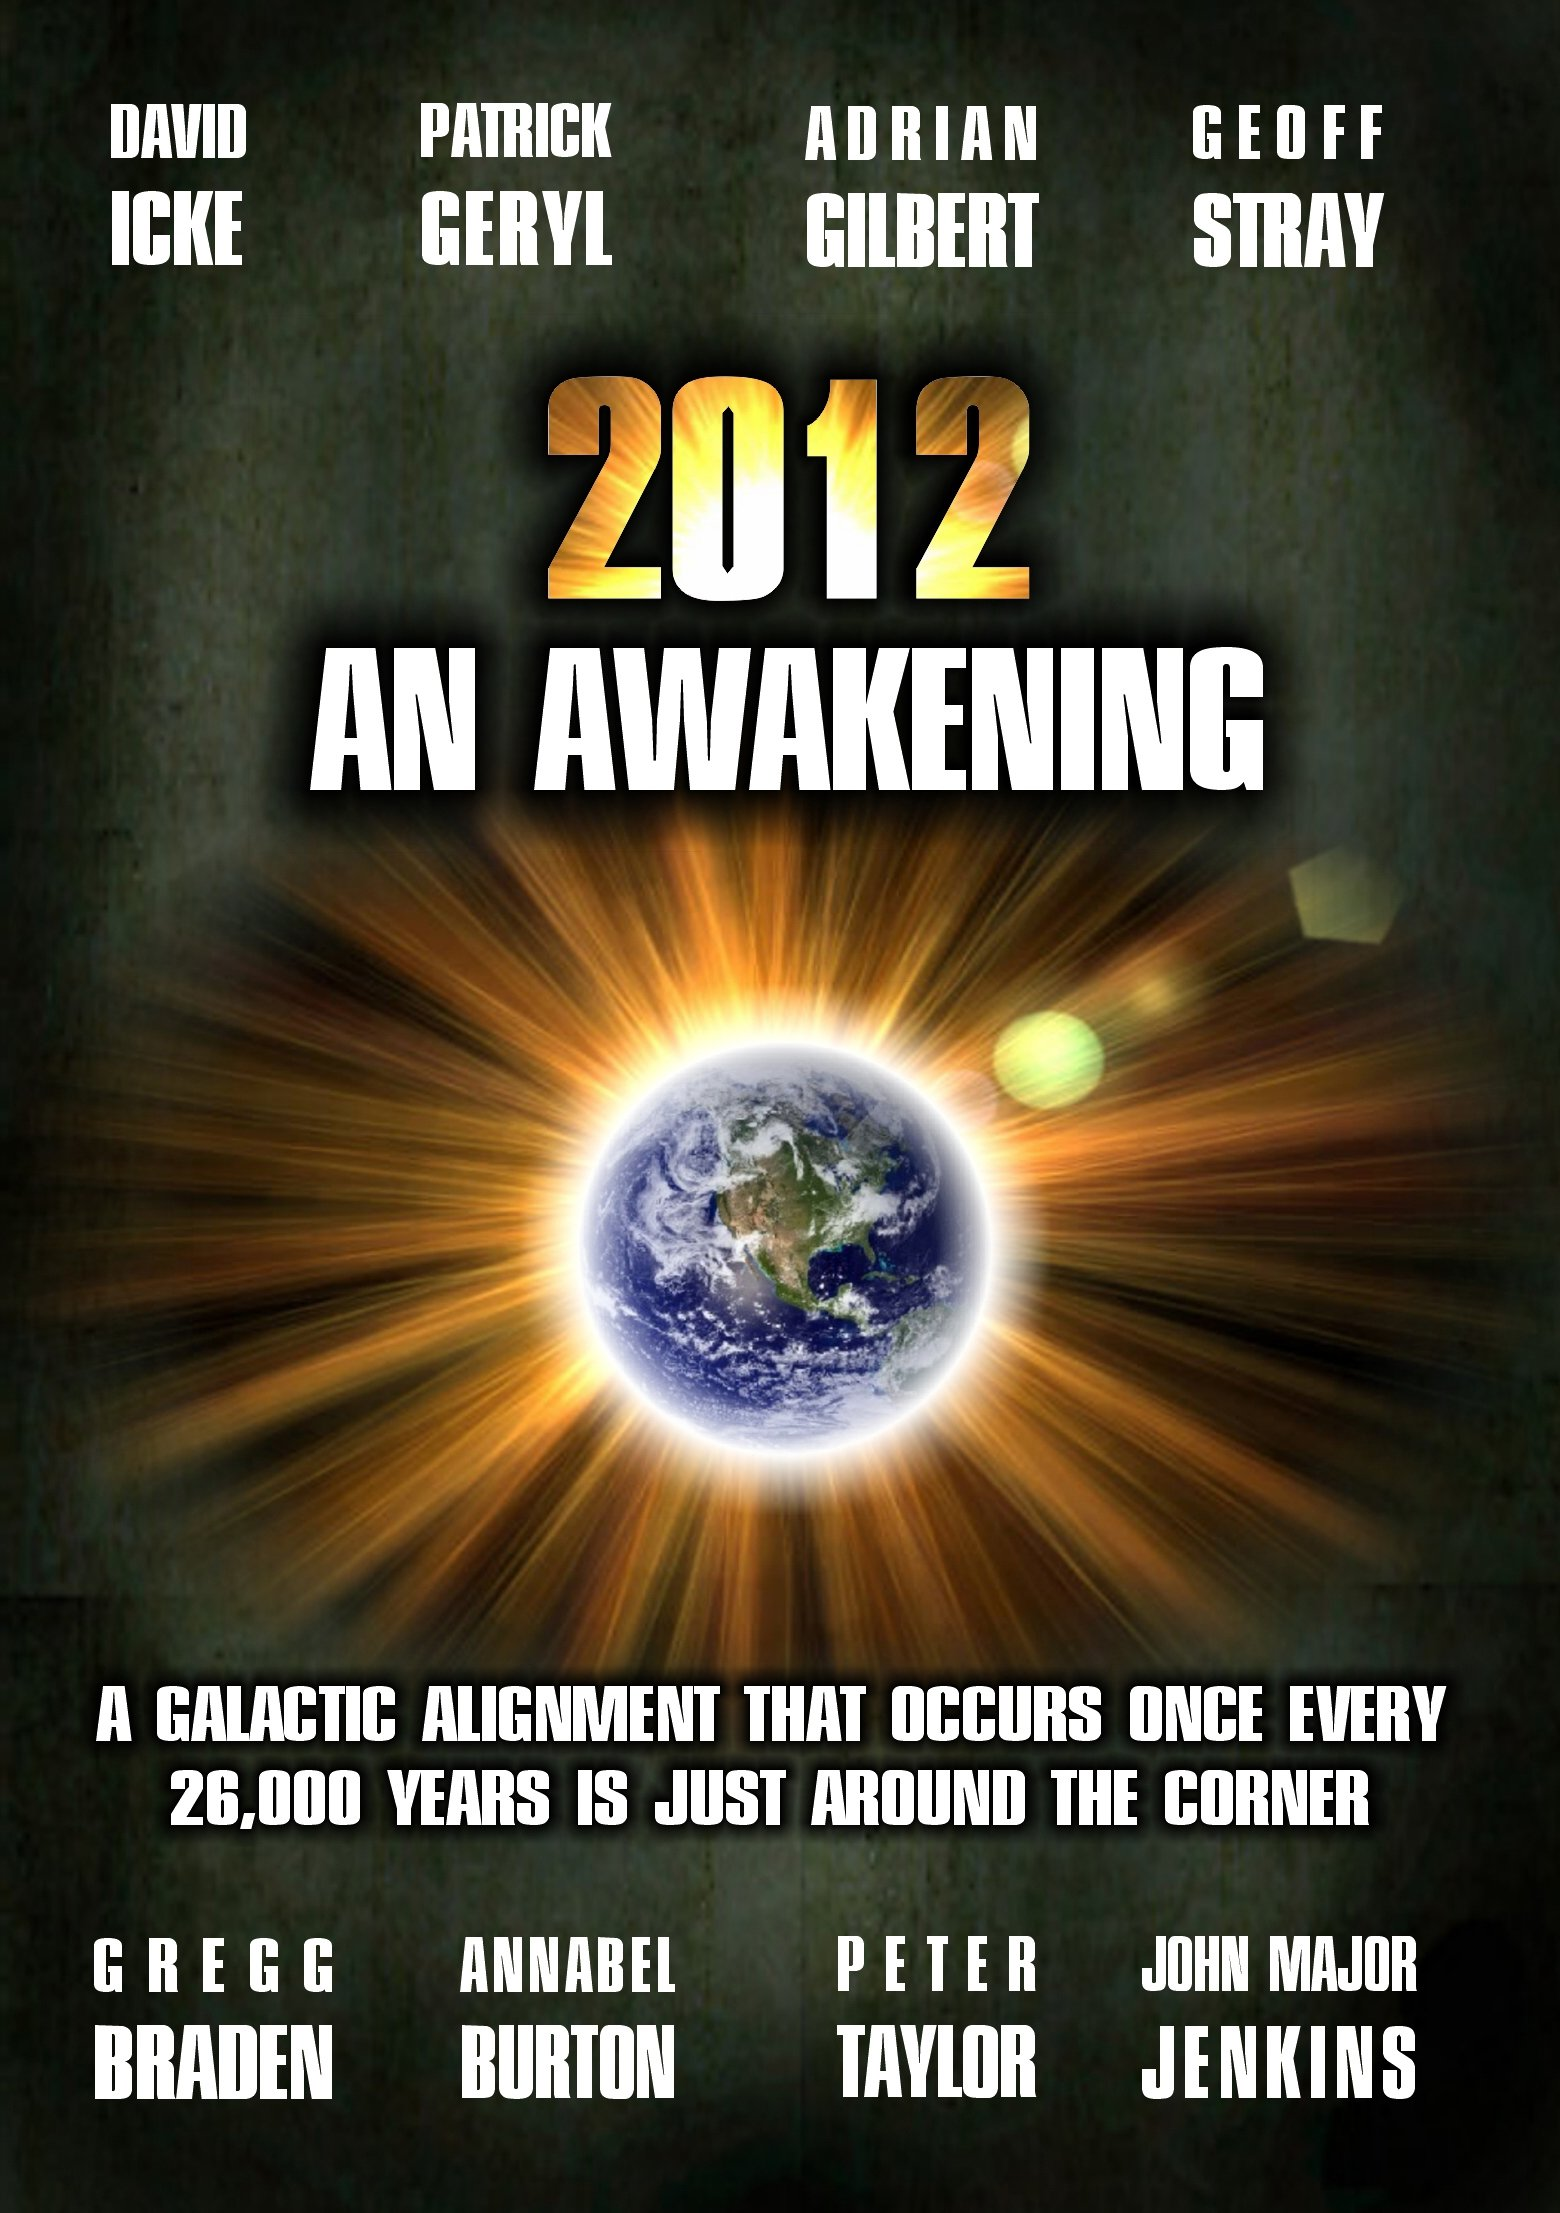 DVD : David Icke - 2012: An Awakening (Full Frame)